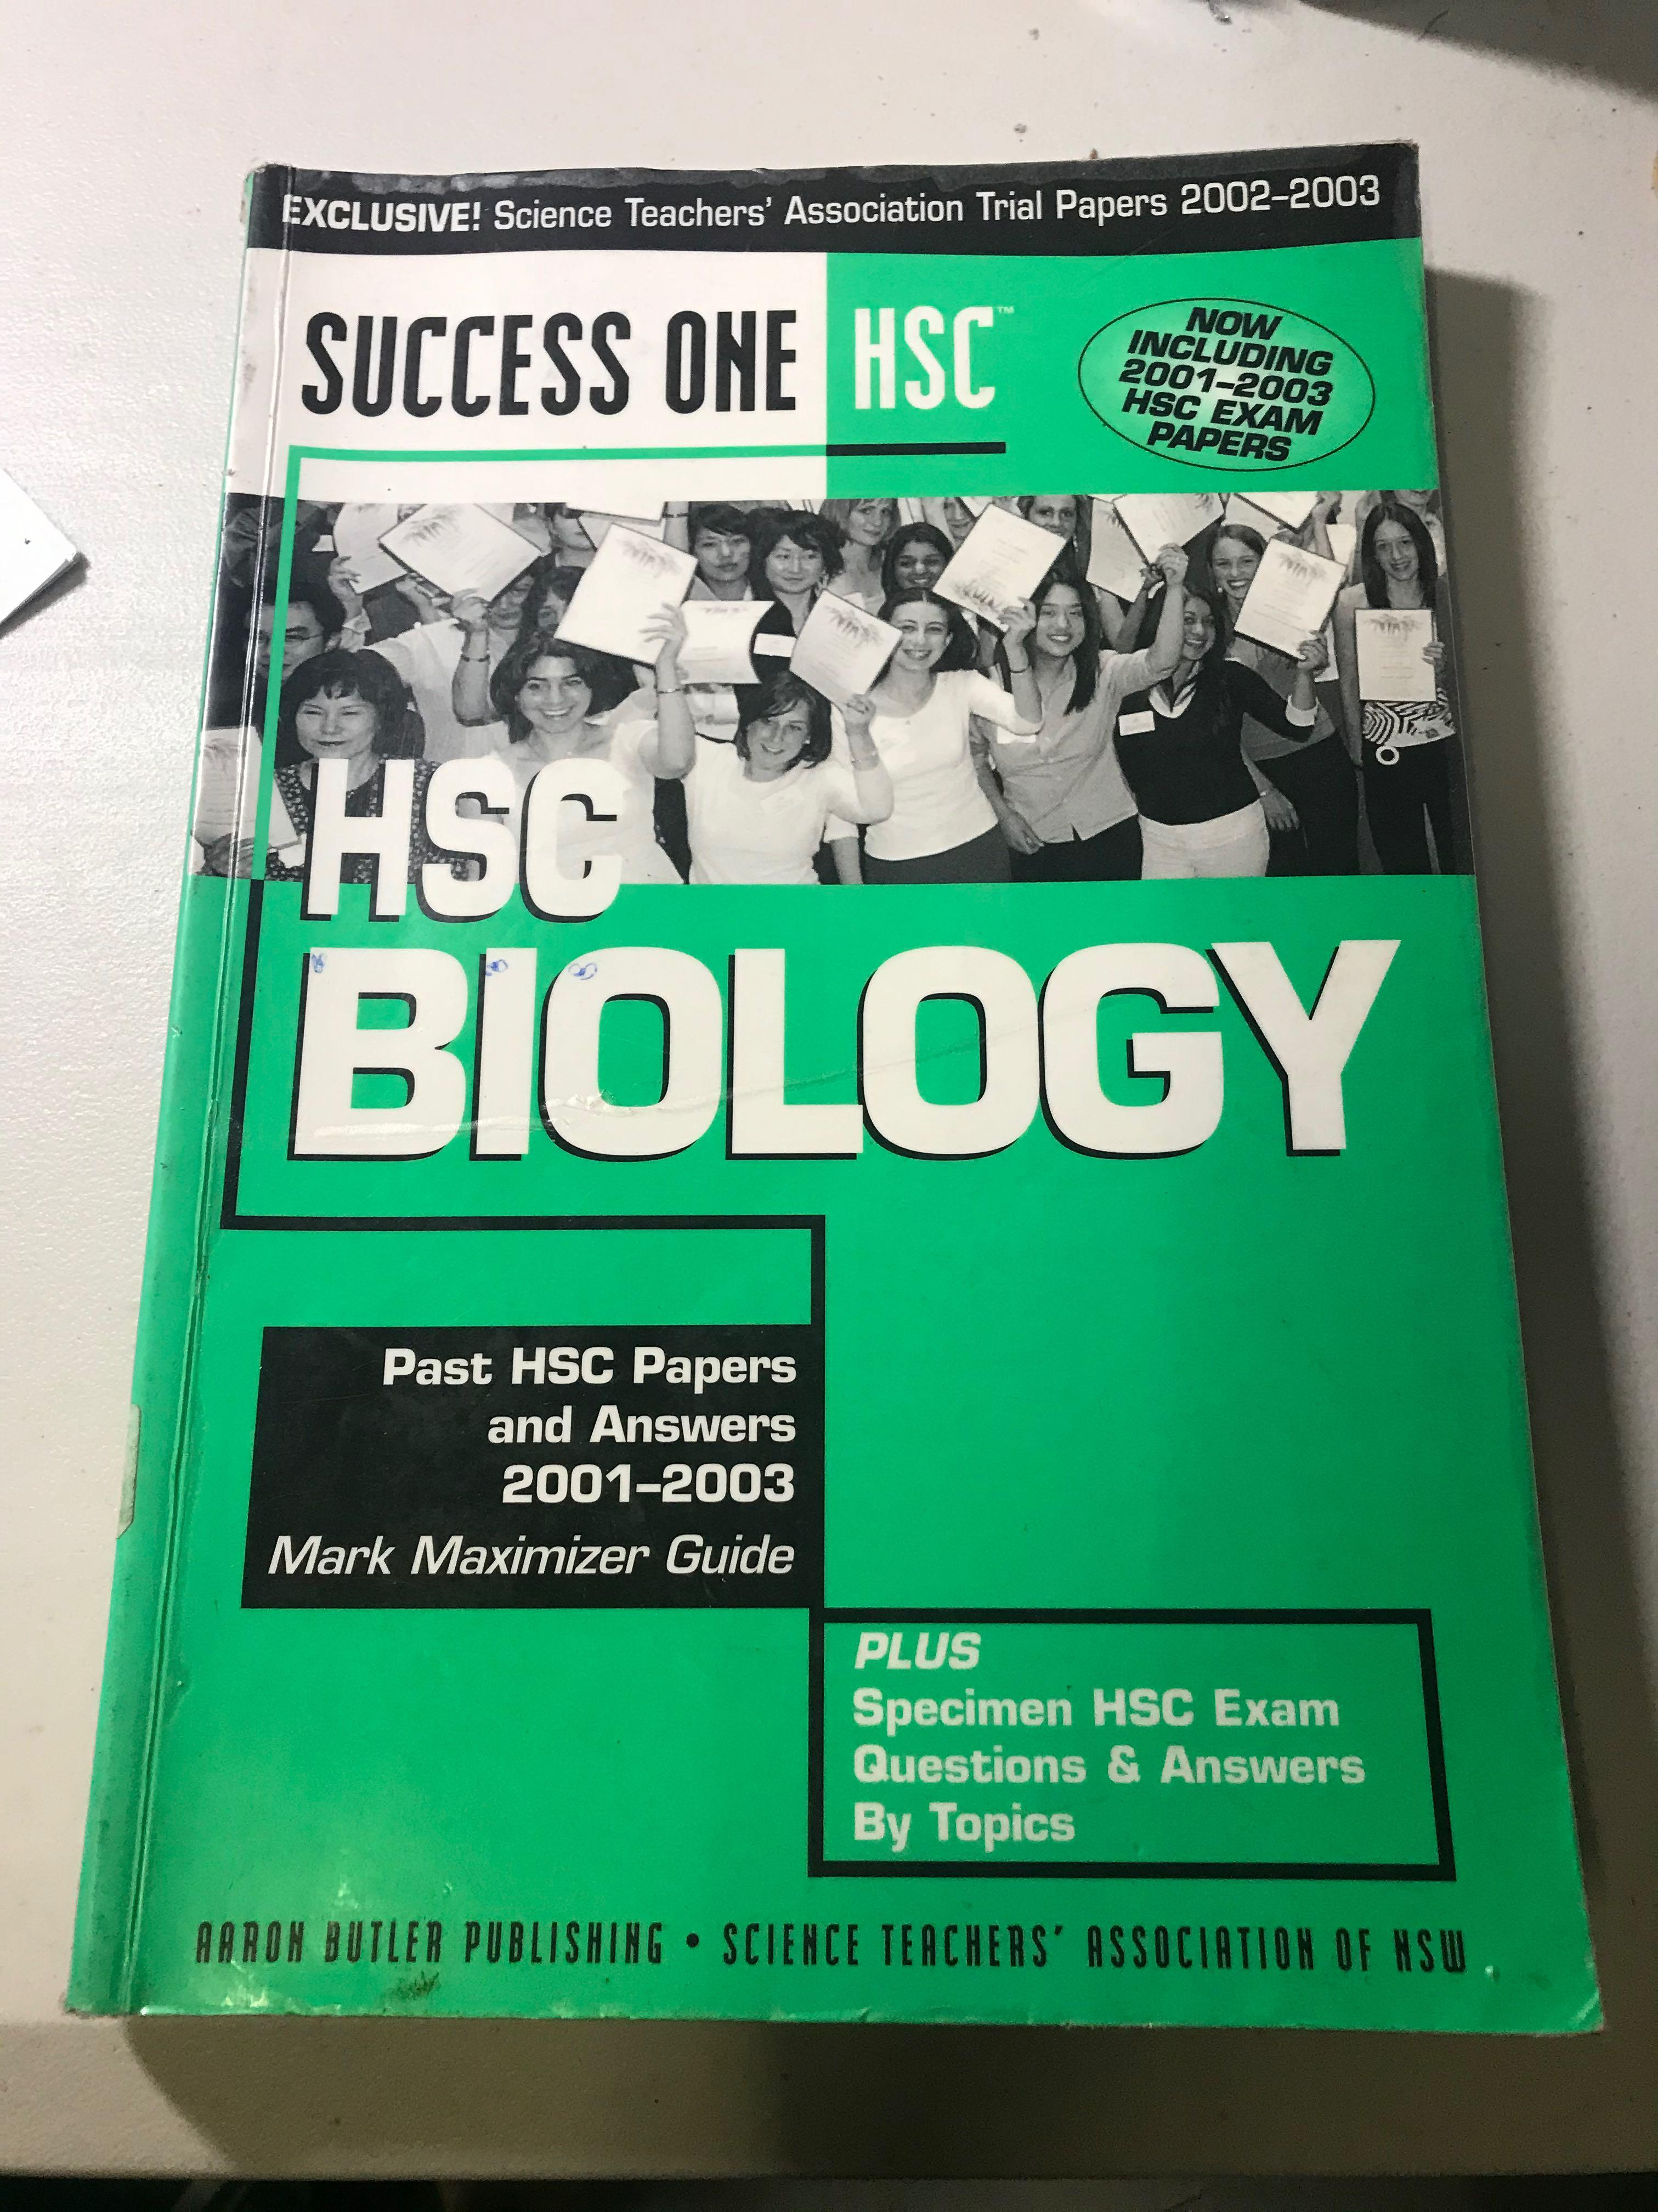 Success One HSC Biology Past HSC papers 2001-2003 + solutions (old syllabus)